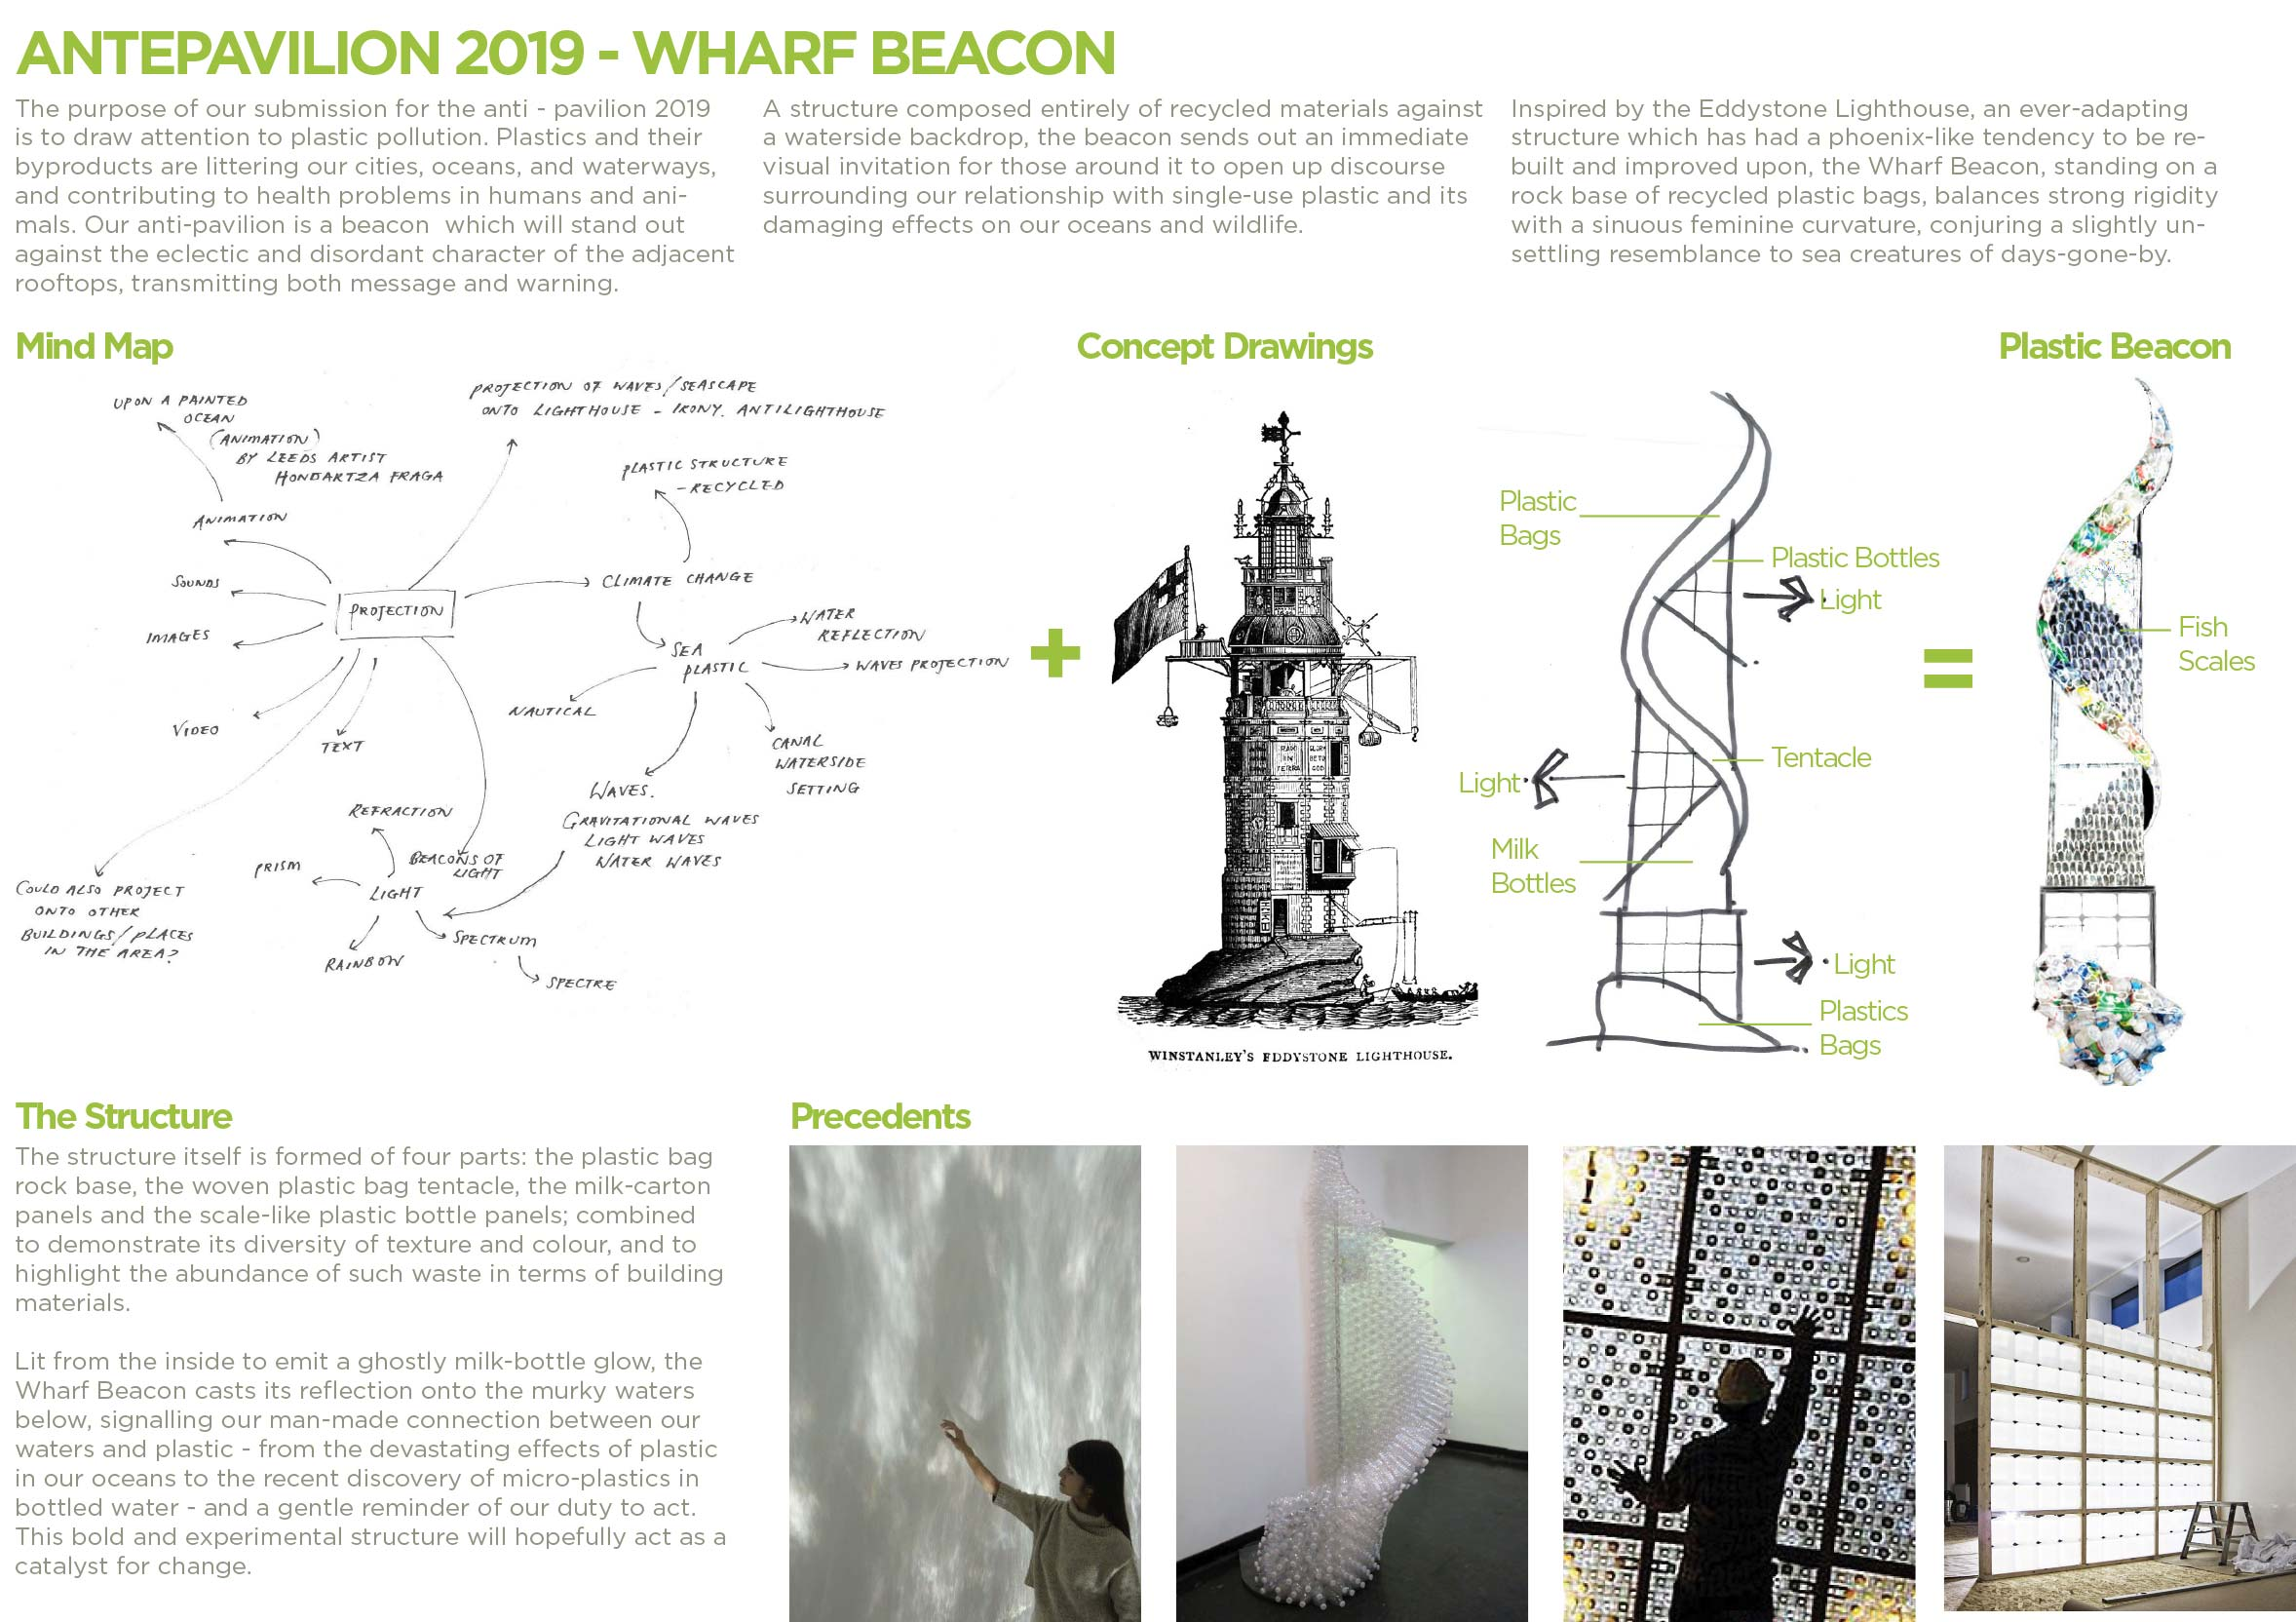 Antepavilion-3-Competition-Wakefied-Architects.jpg